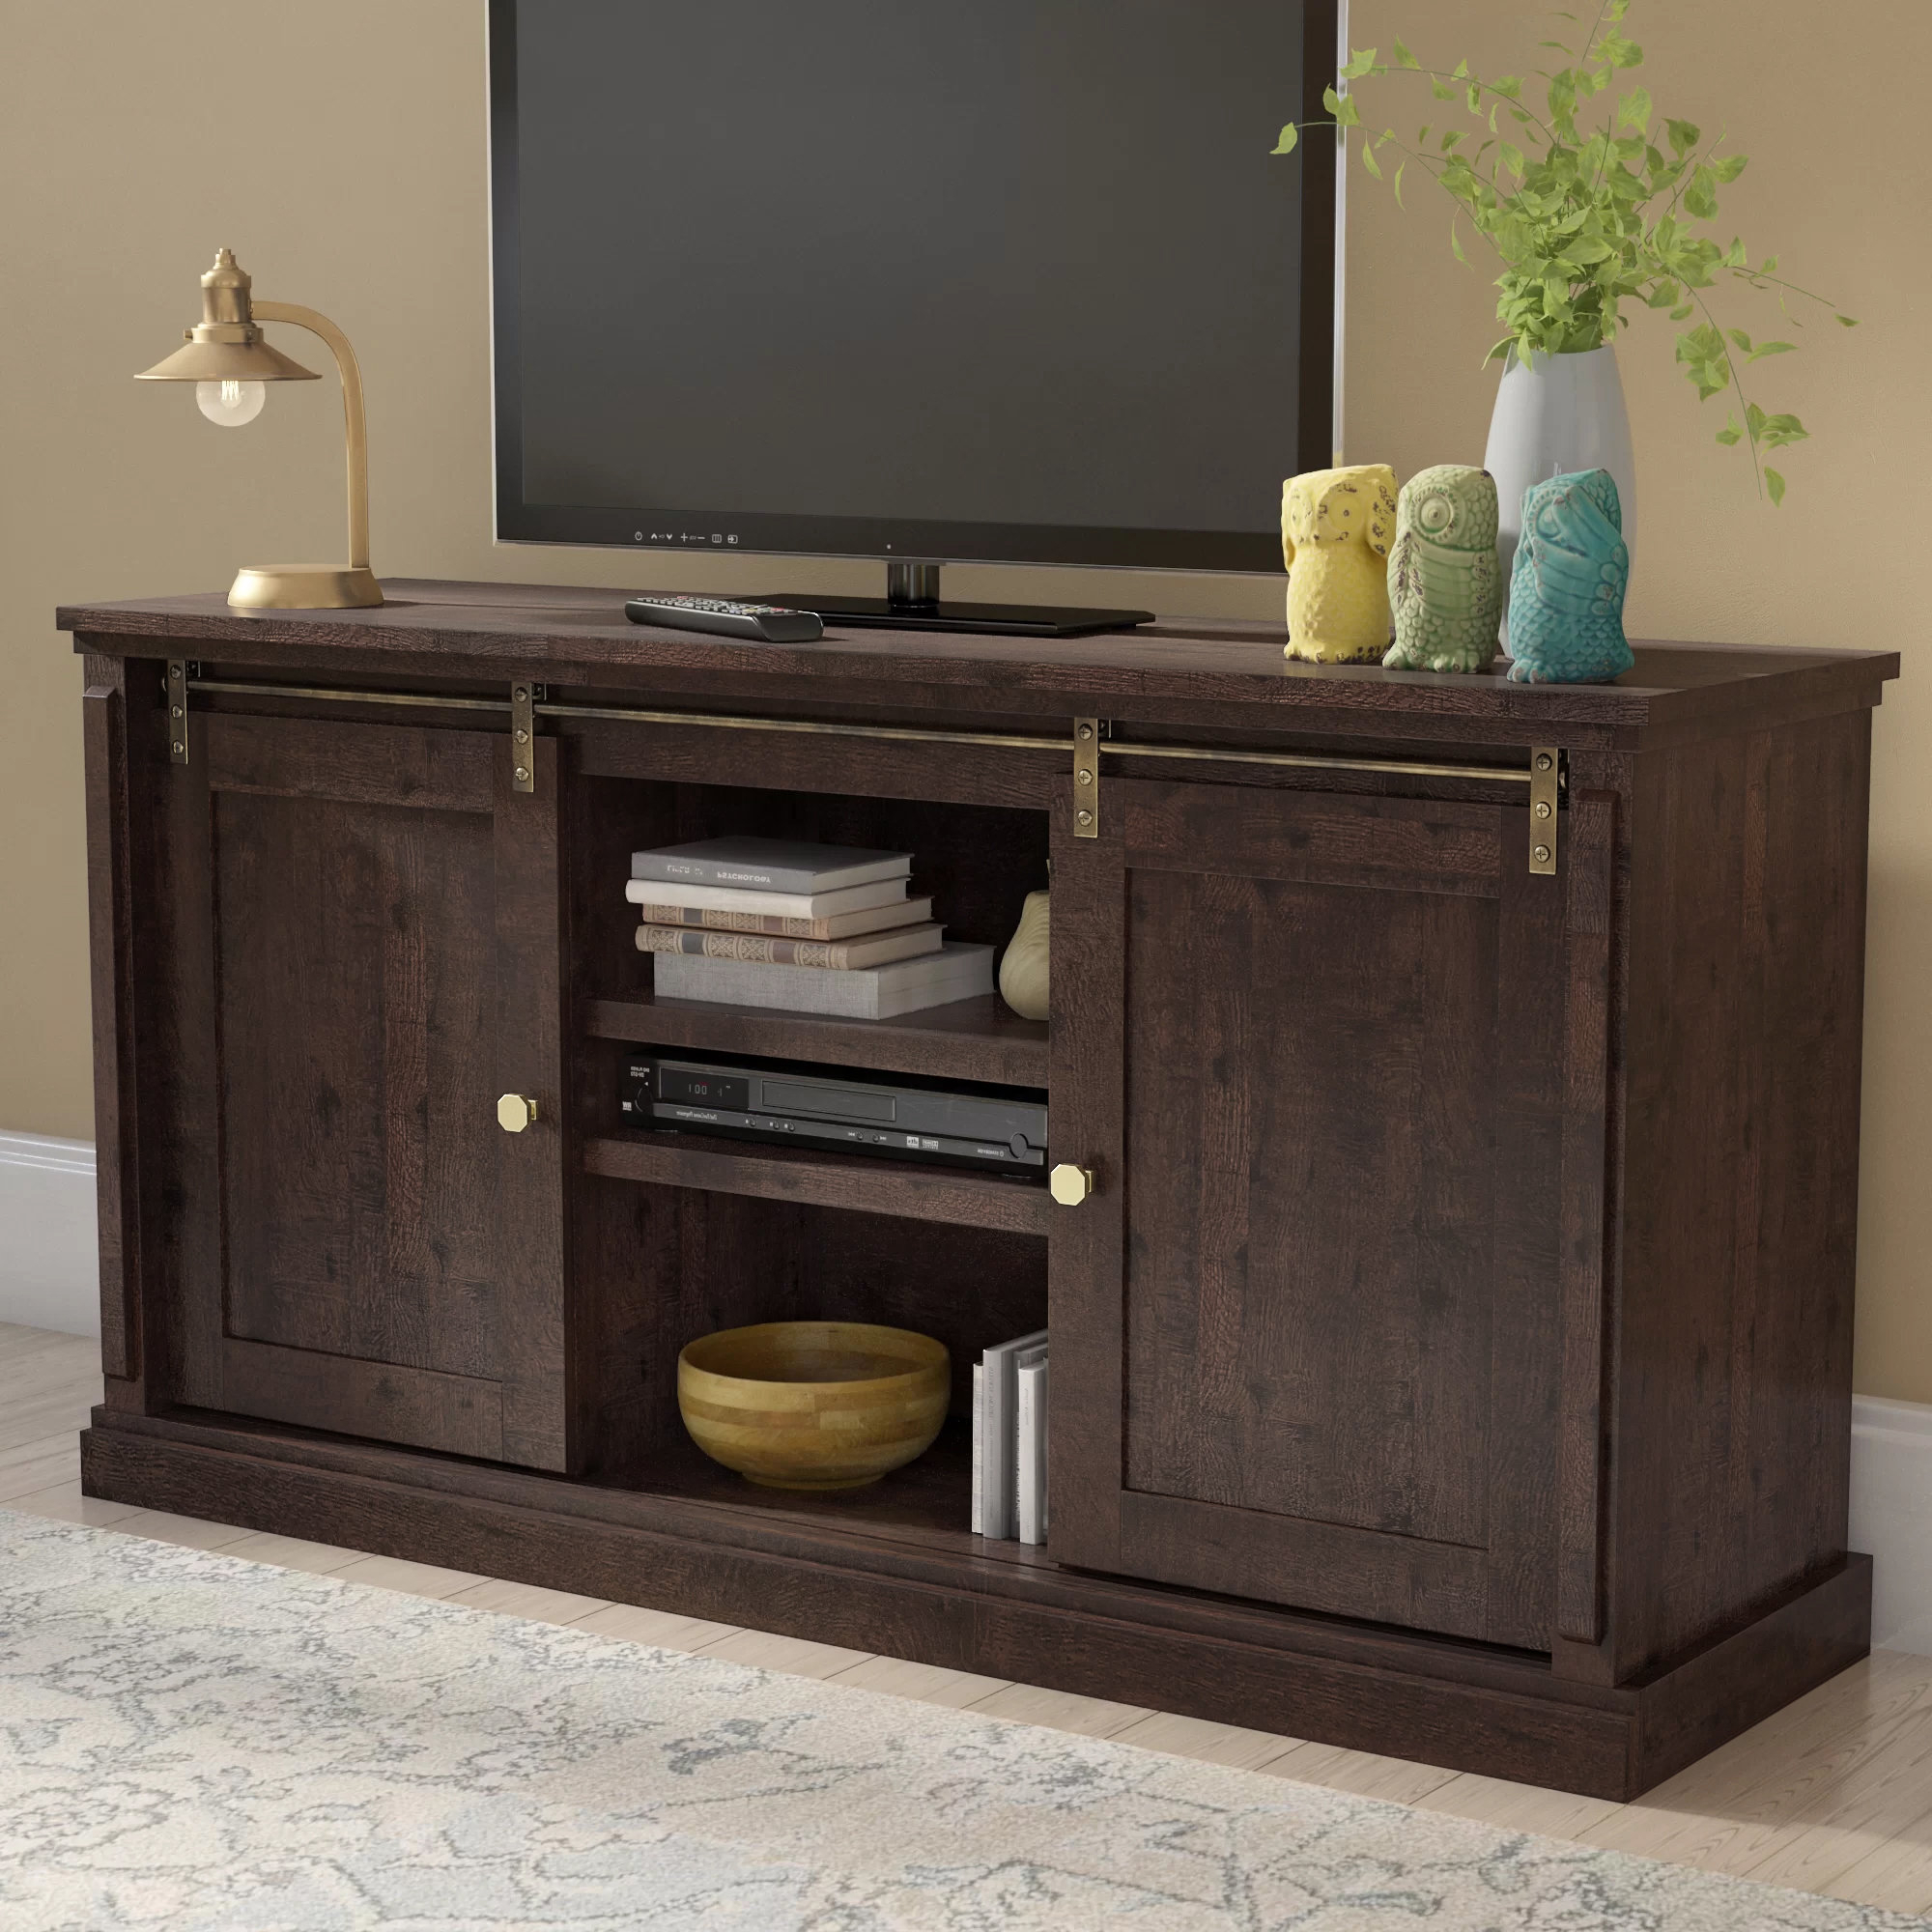 "Dark Brown Wood Tv Stands You'll Love In 2019 | Wayfair Intended For Ericka Tv Stands For Tvs Up To 42"" (View 19 of 20)"